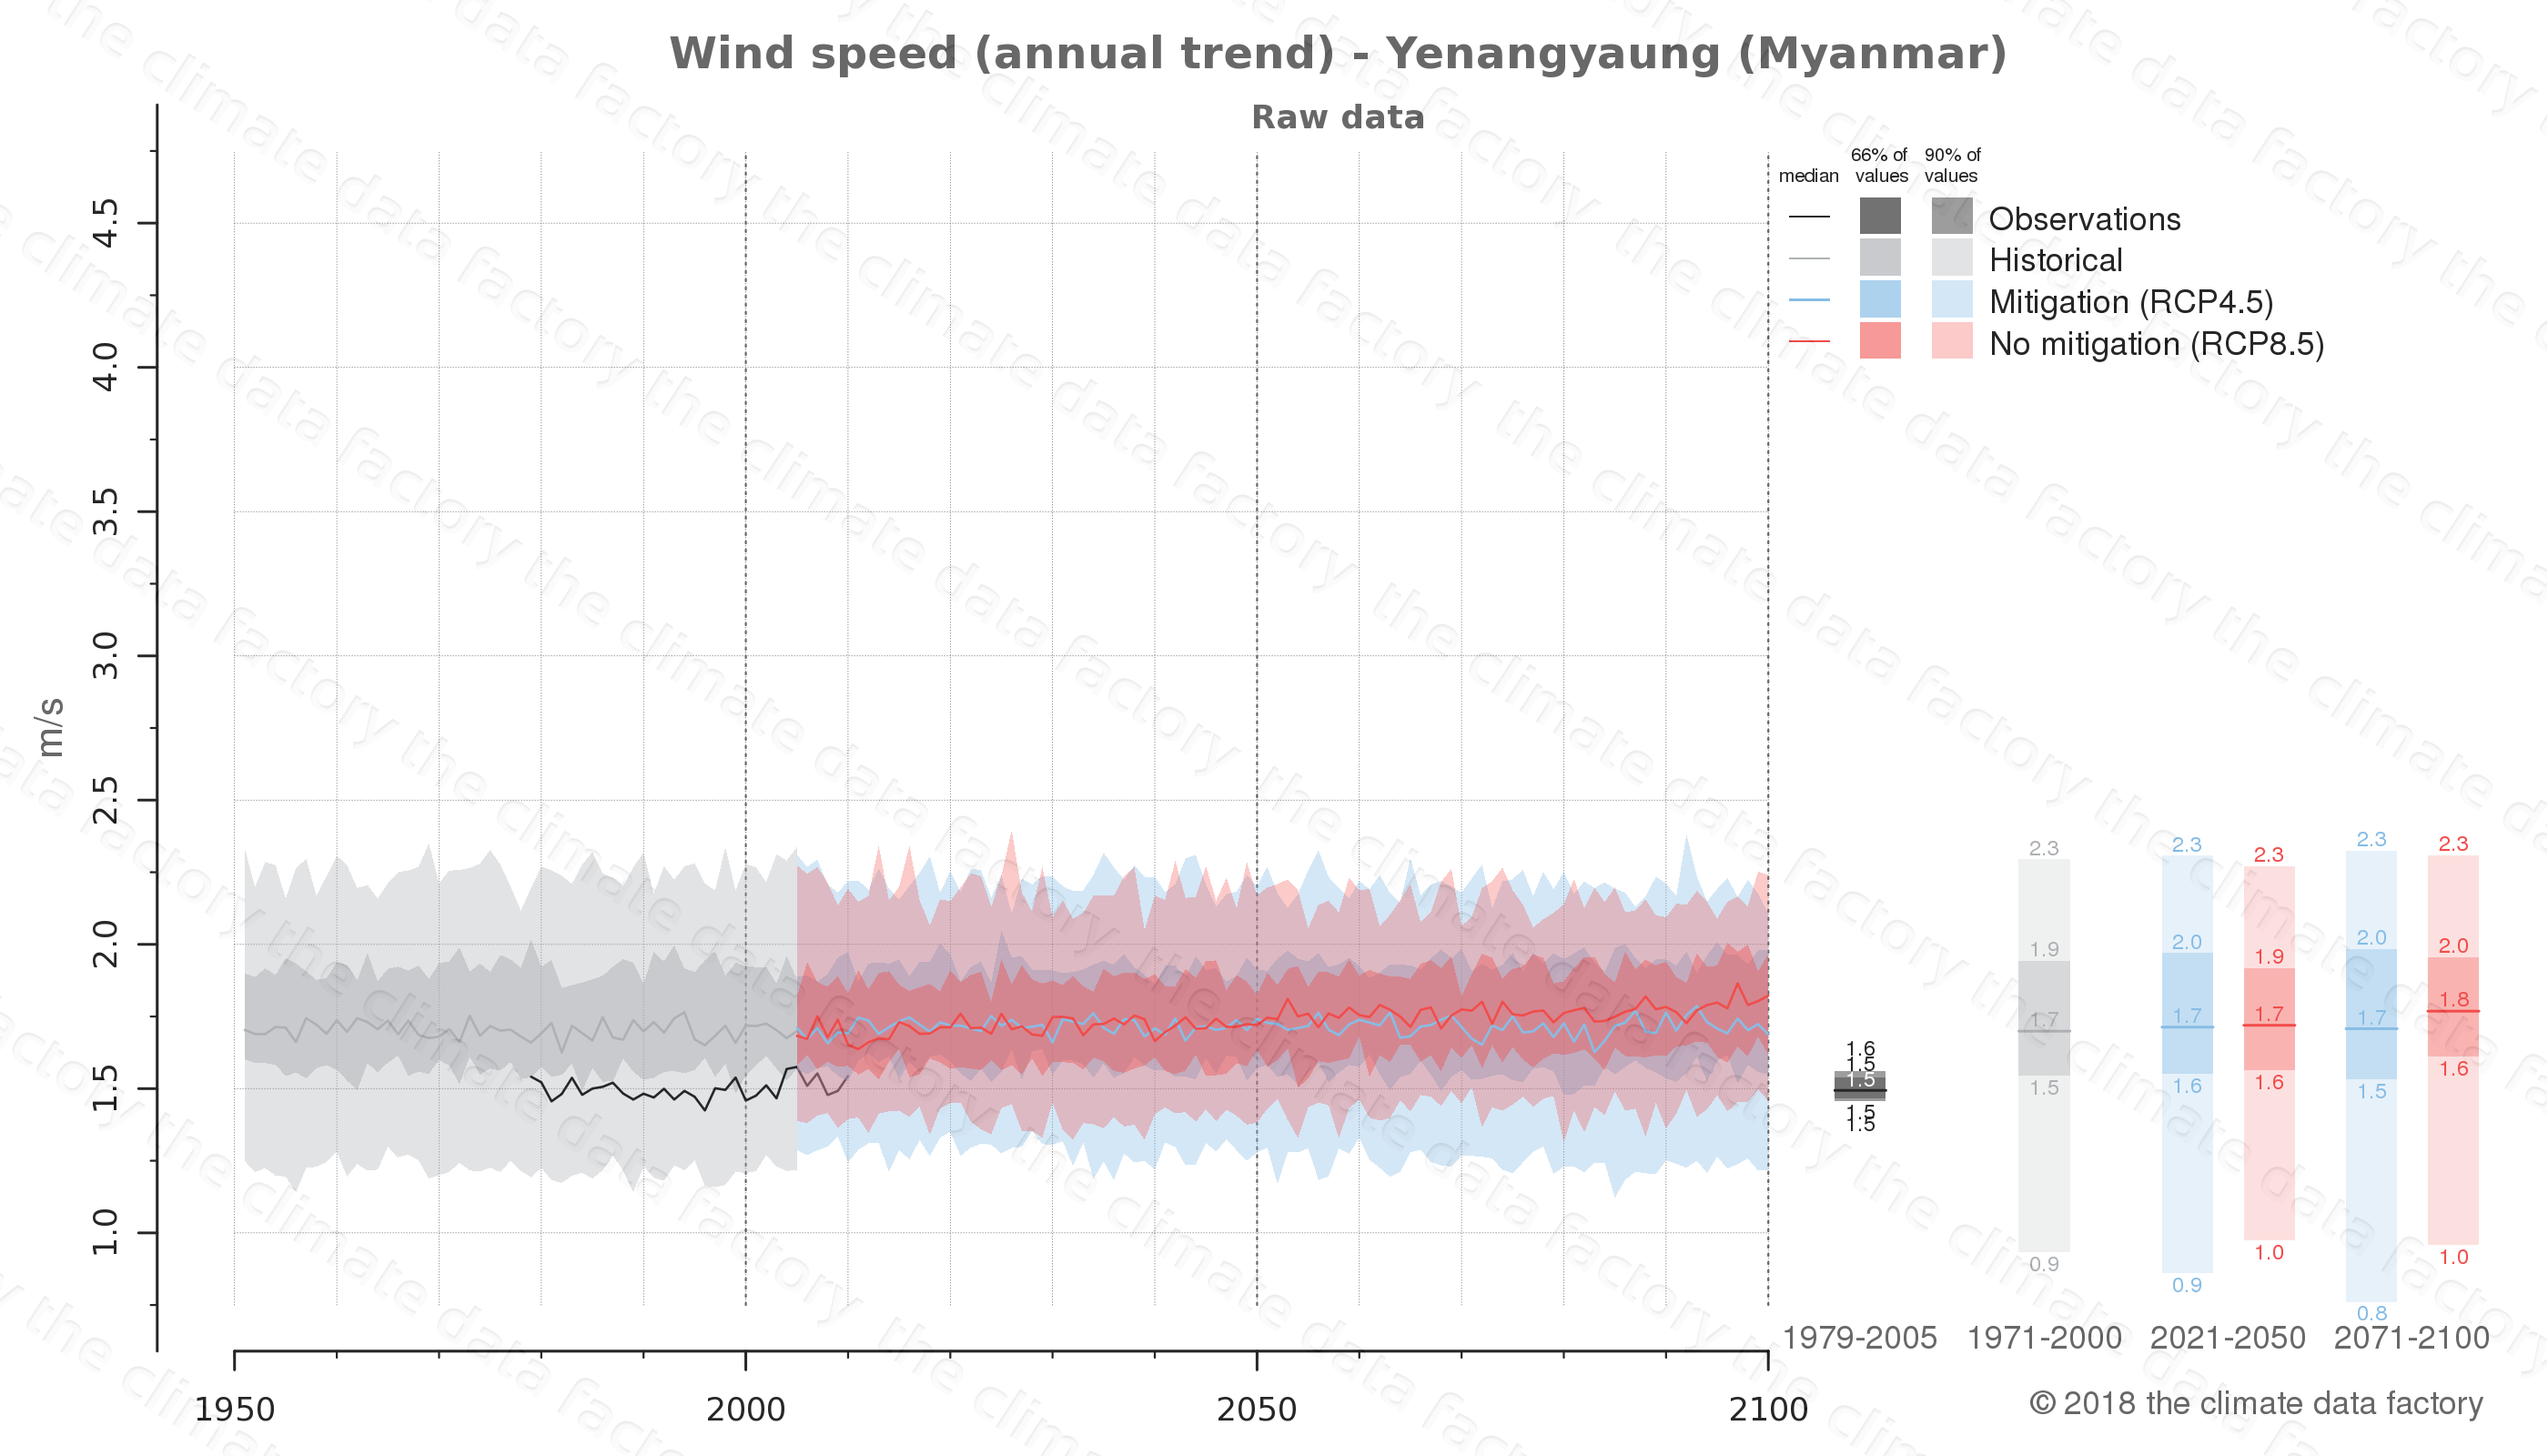 climate change data policy adaptation climate graph city data wind-speed yenangyaung myanmar